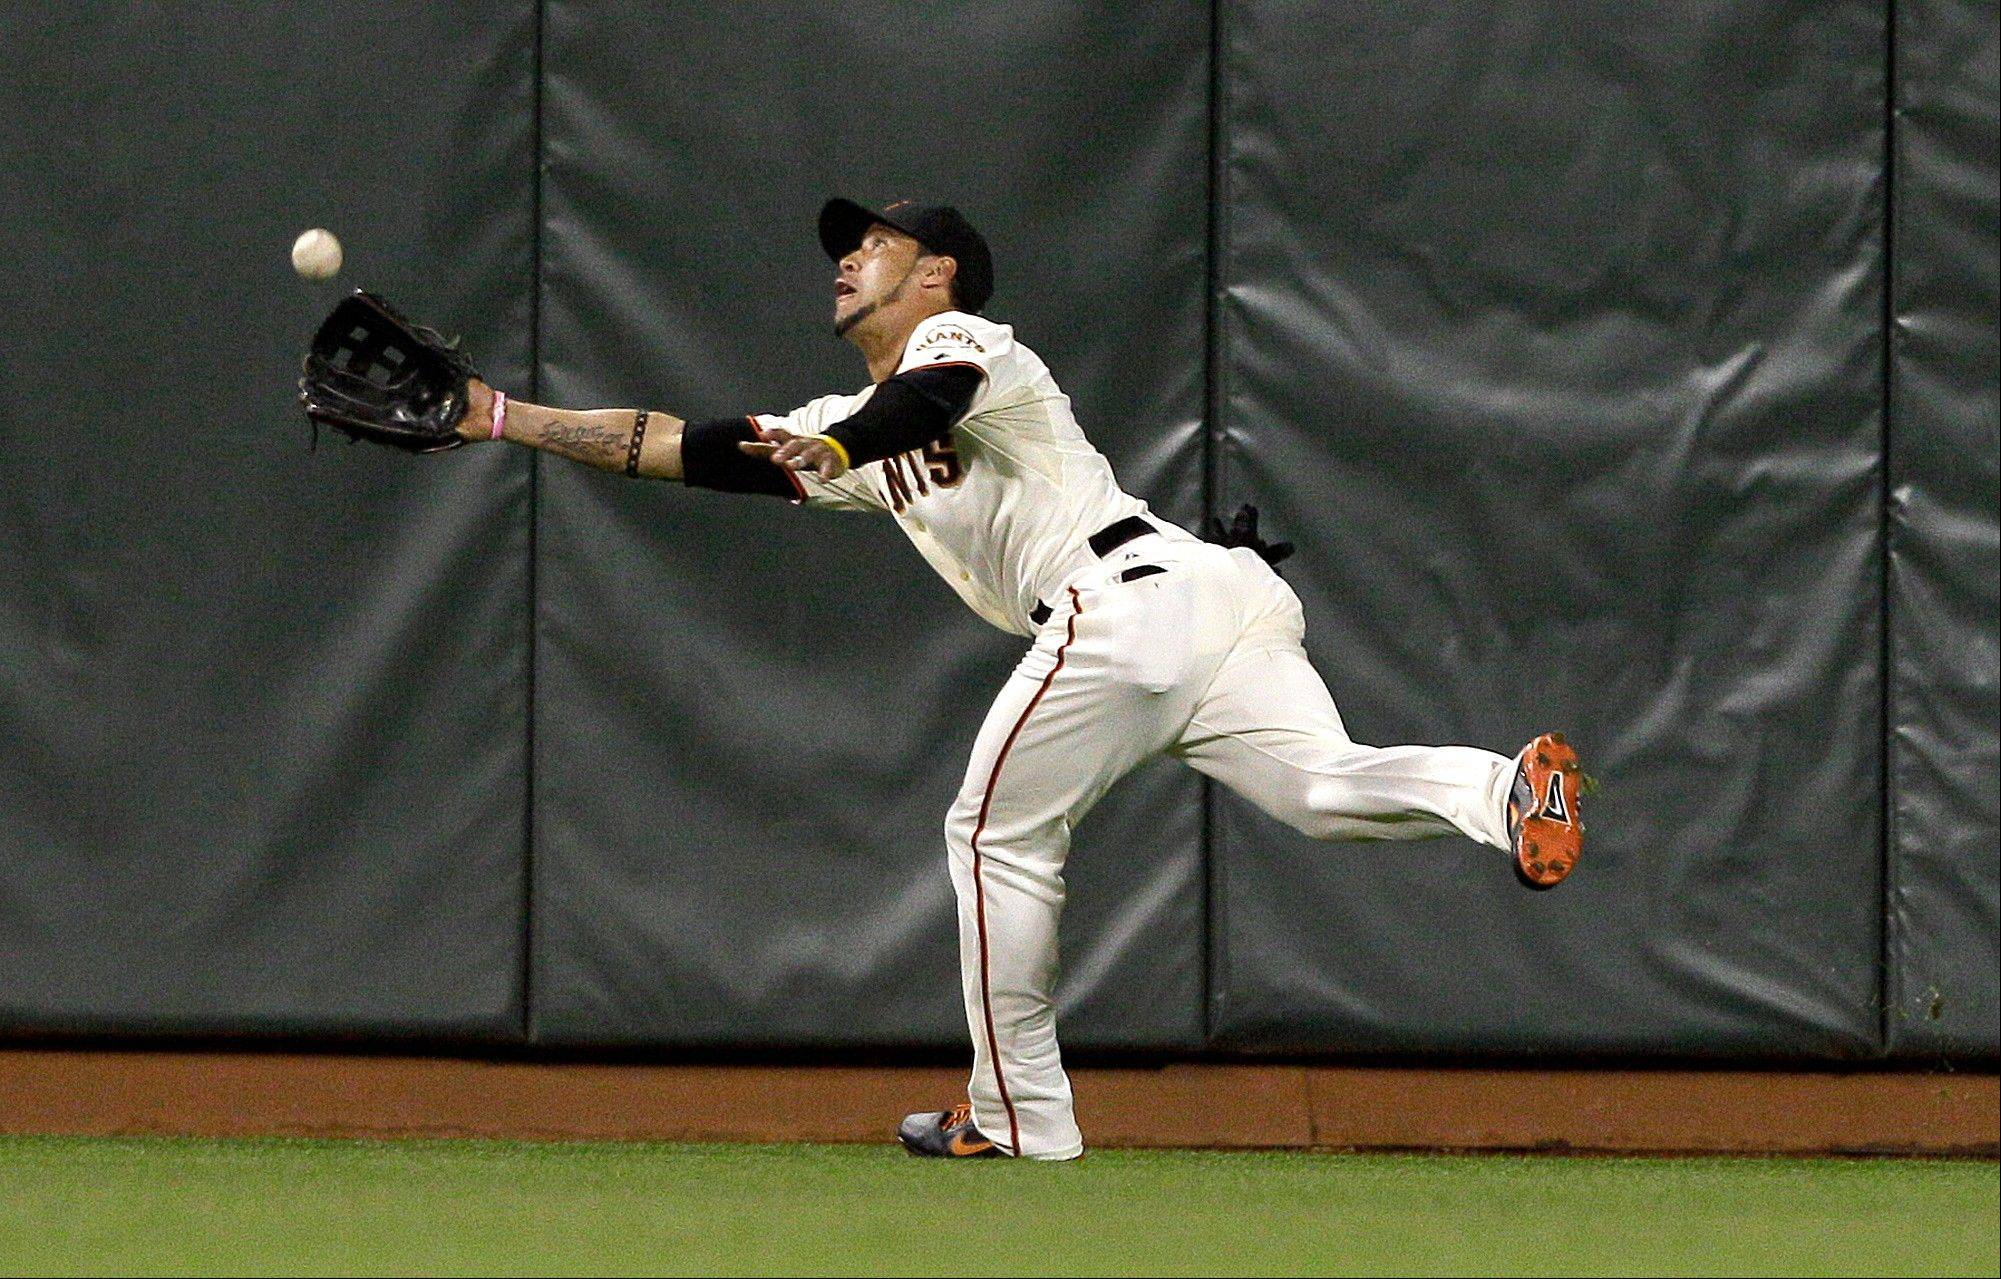 San Francisco Giants center fielder Gregor Blanco catches a fly ball hit by the Houston Astros' Jordan Schafer during the seventh inning.